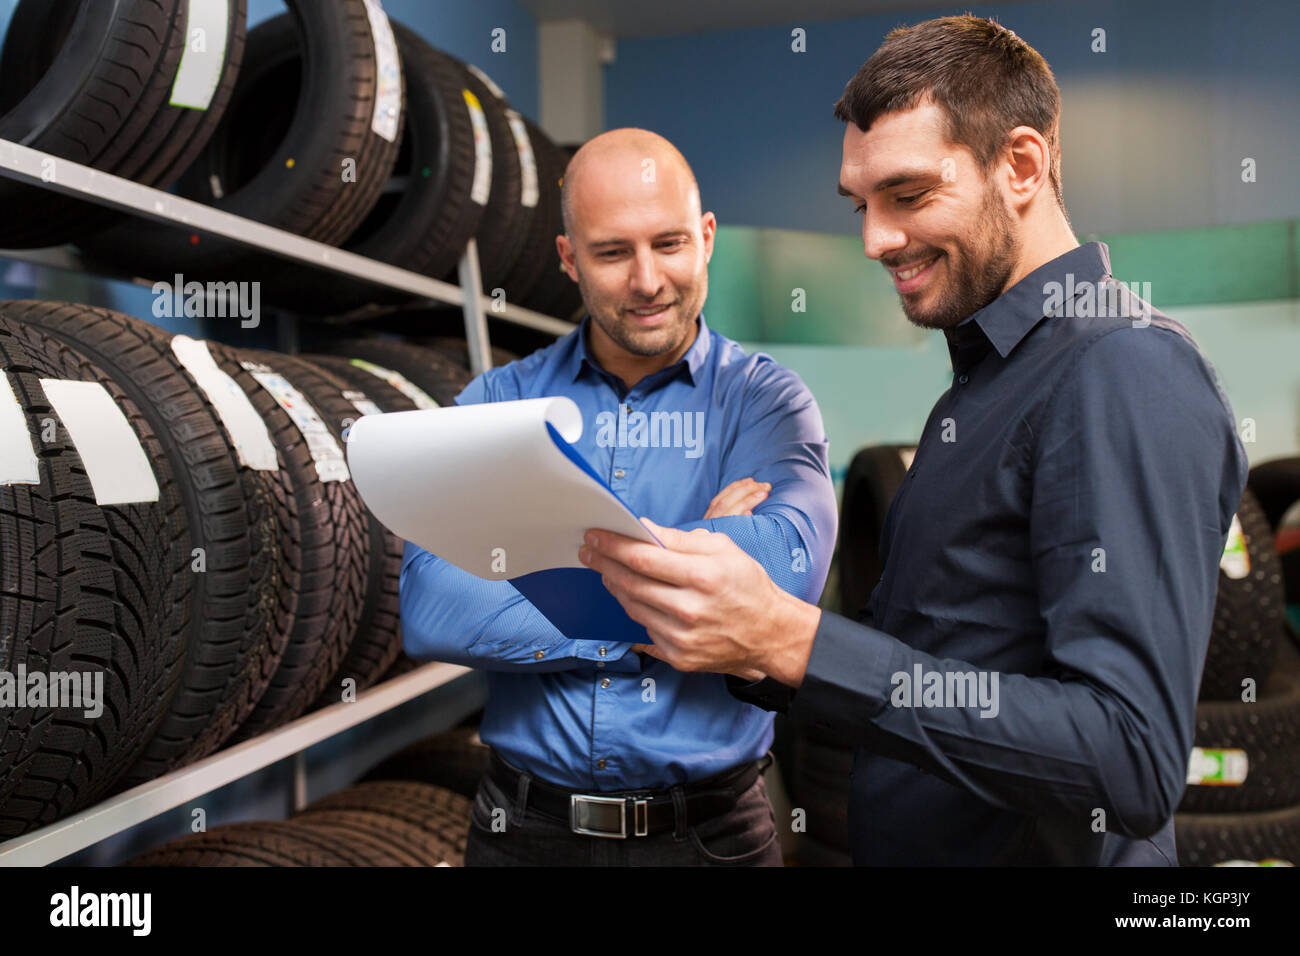 customer and salesman at car service or auto store - Stock Image